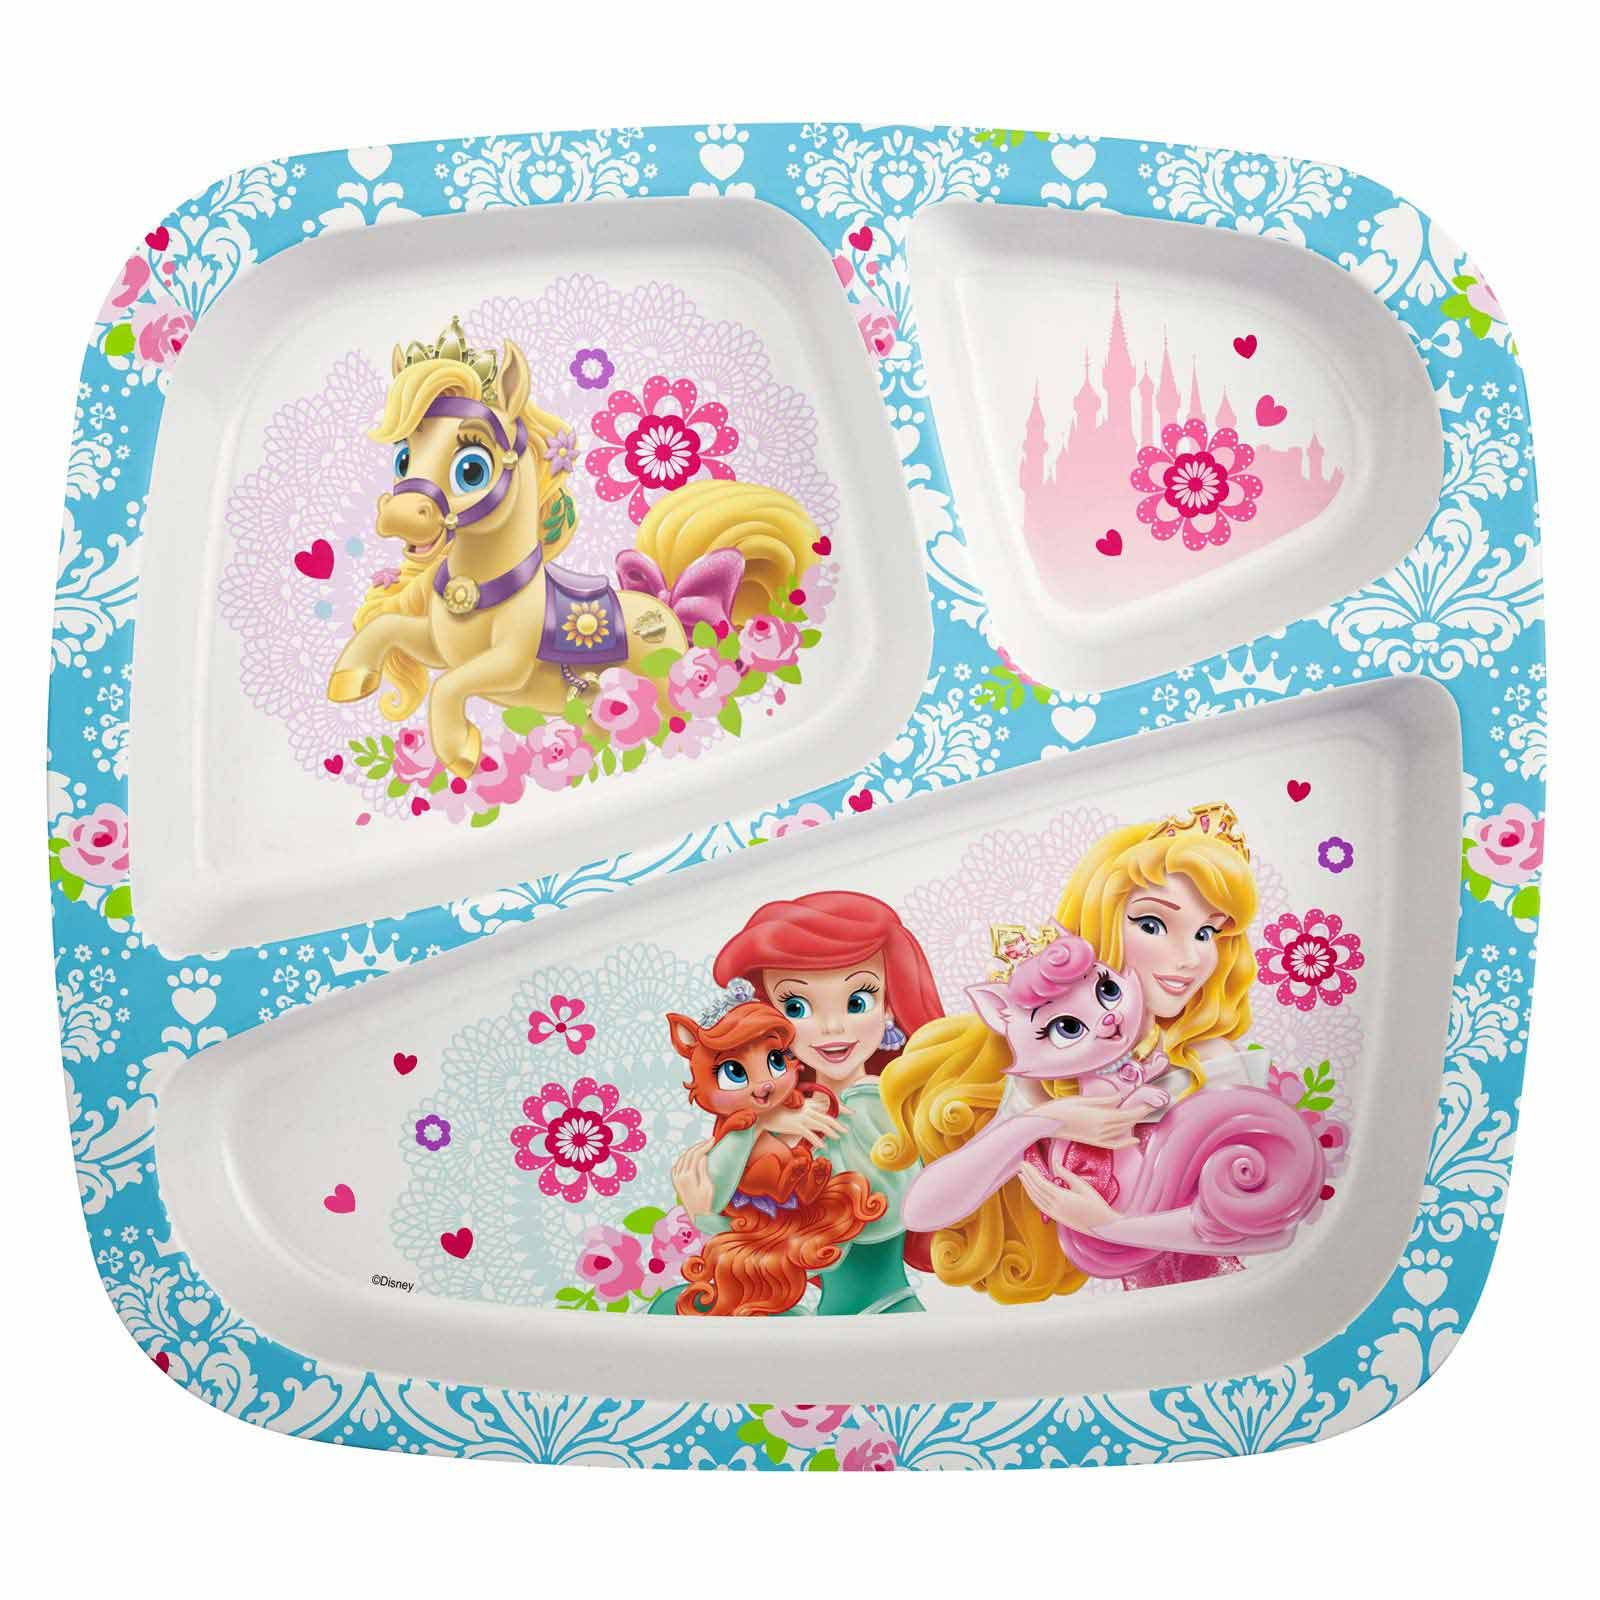 Palace Pets Divided Plates for Kids  sc 1 st  Pinterest & Palace Pets Divided Plates for Kids | Kid Plates and ...fun